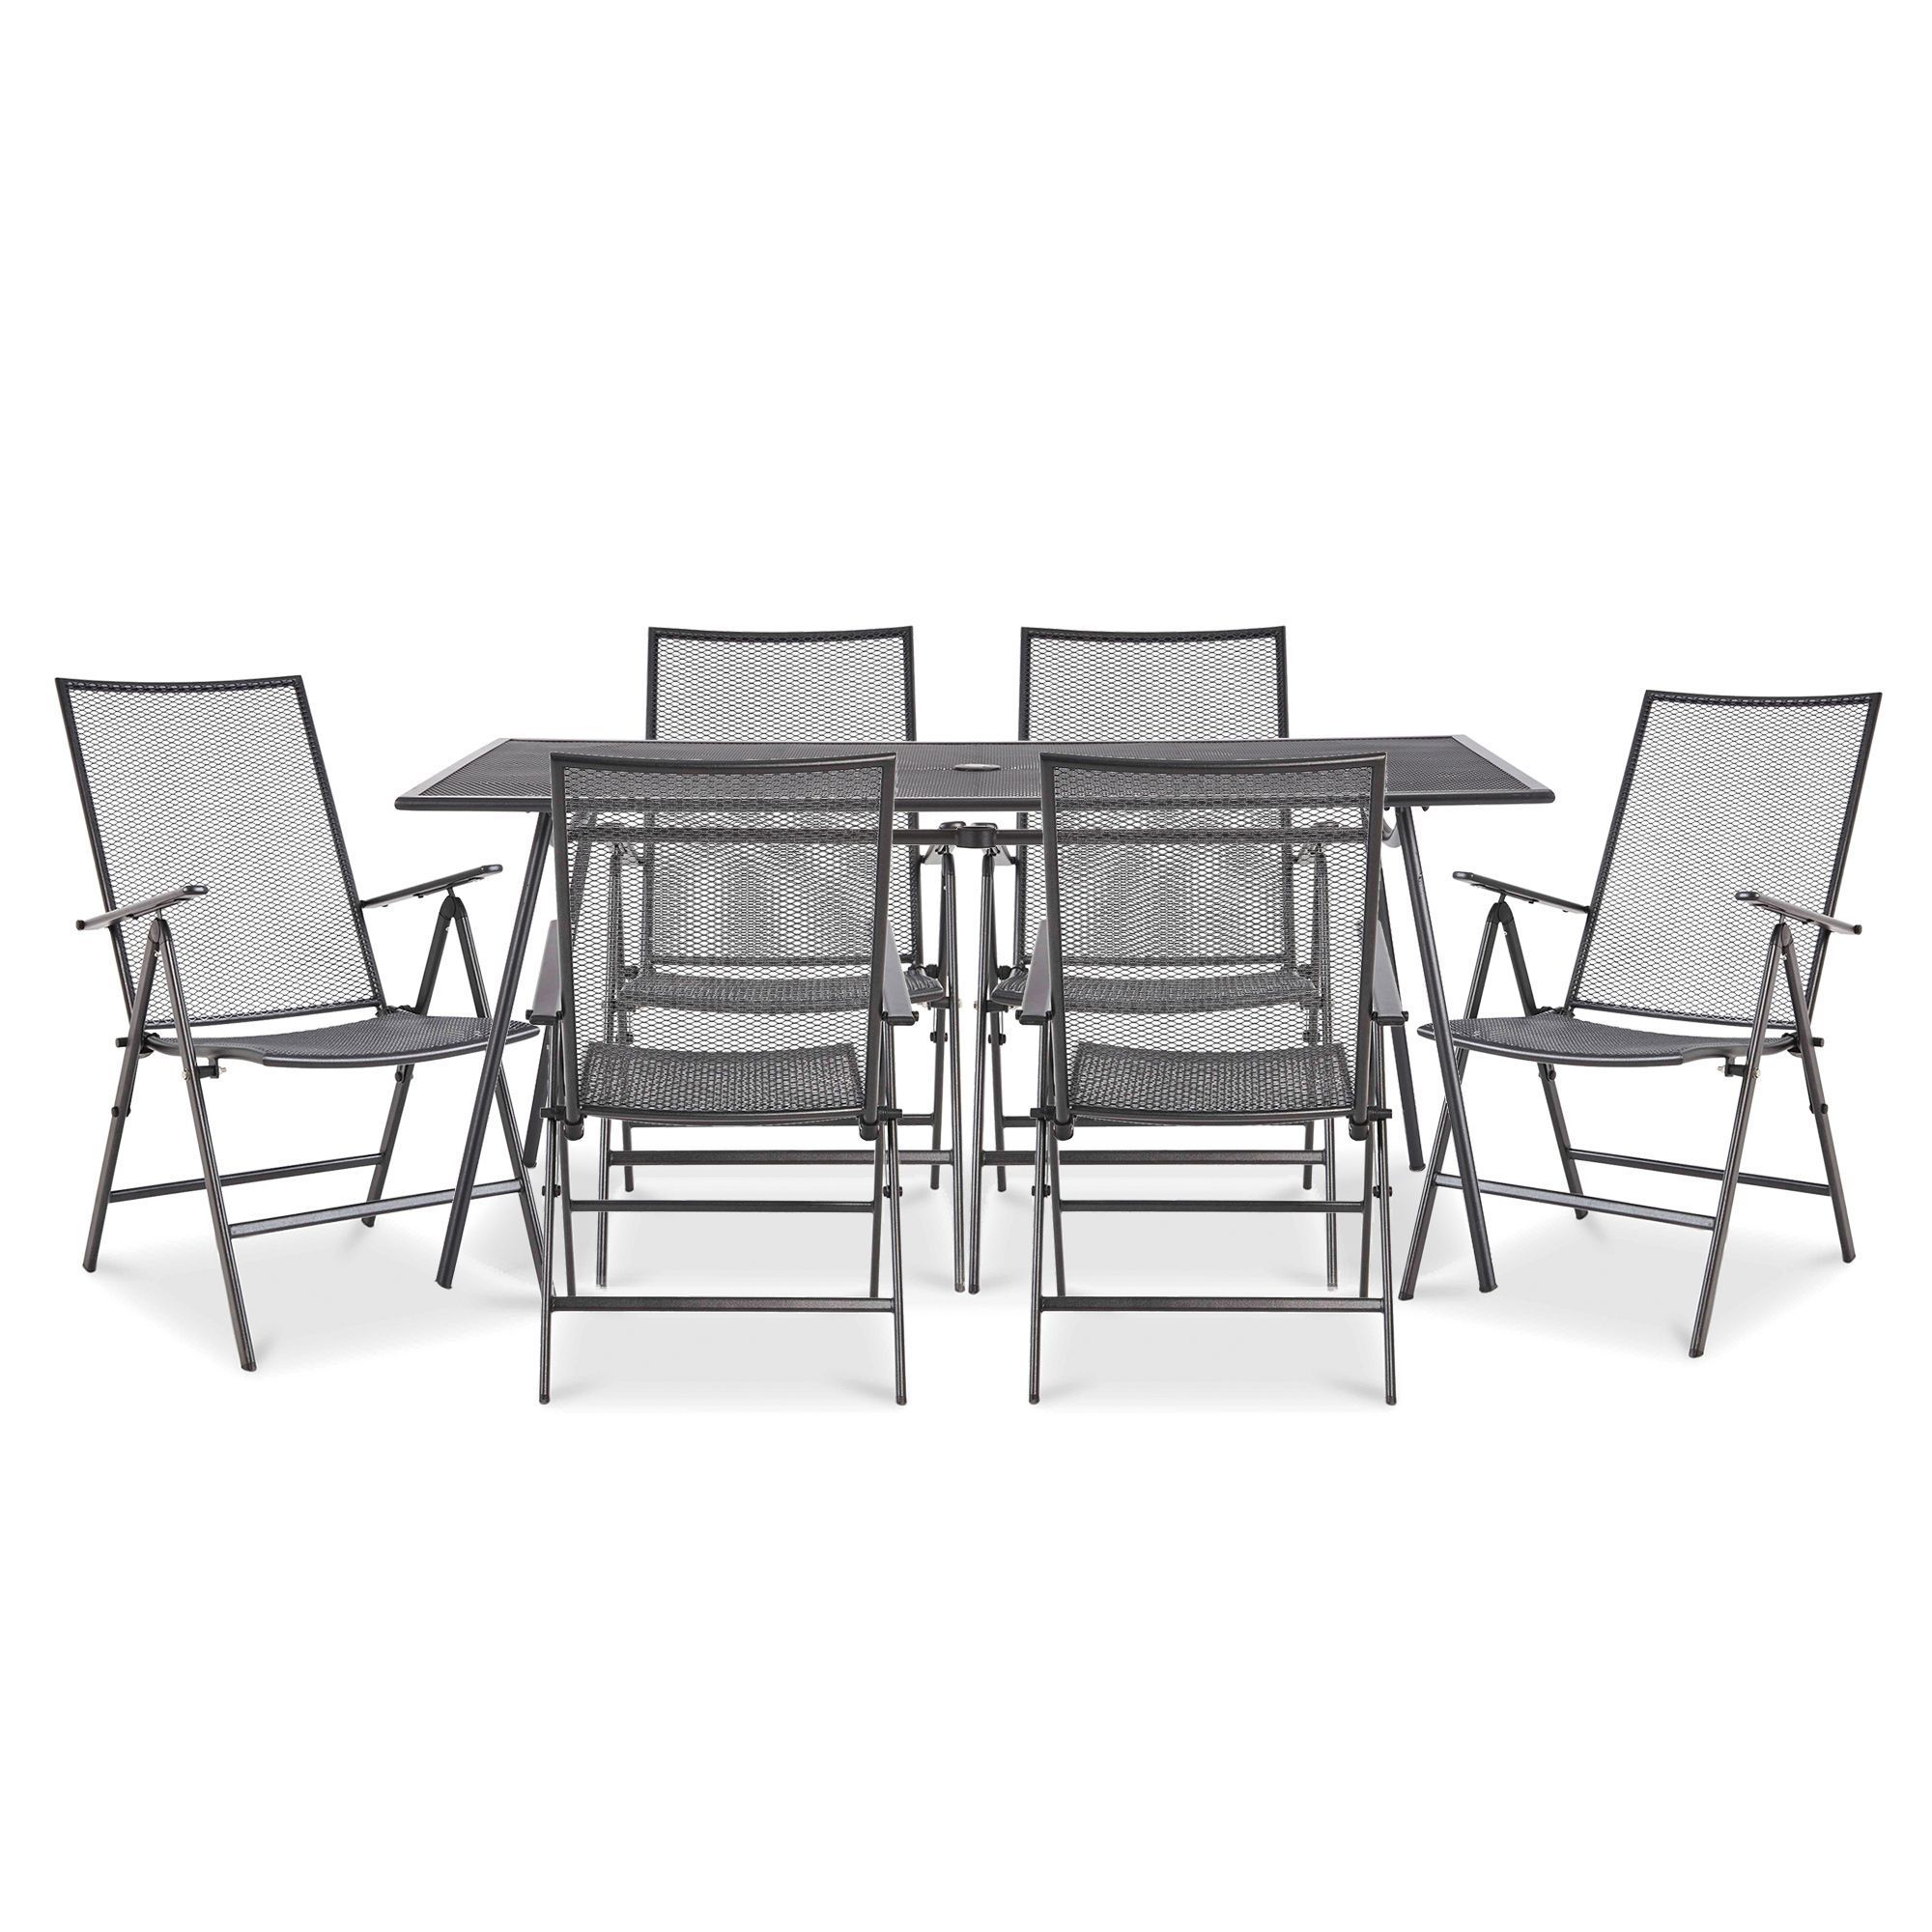 Adelaide Metal 9 seater Recliner set - B&Q for all your home and